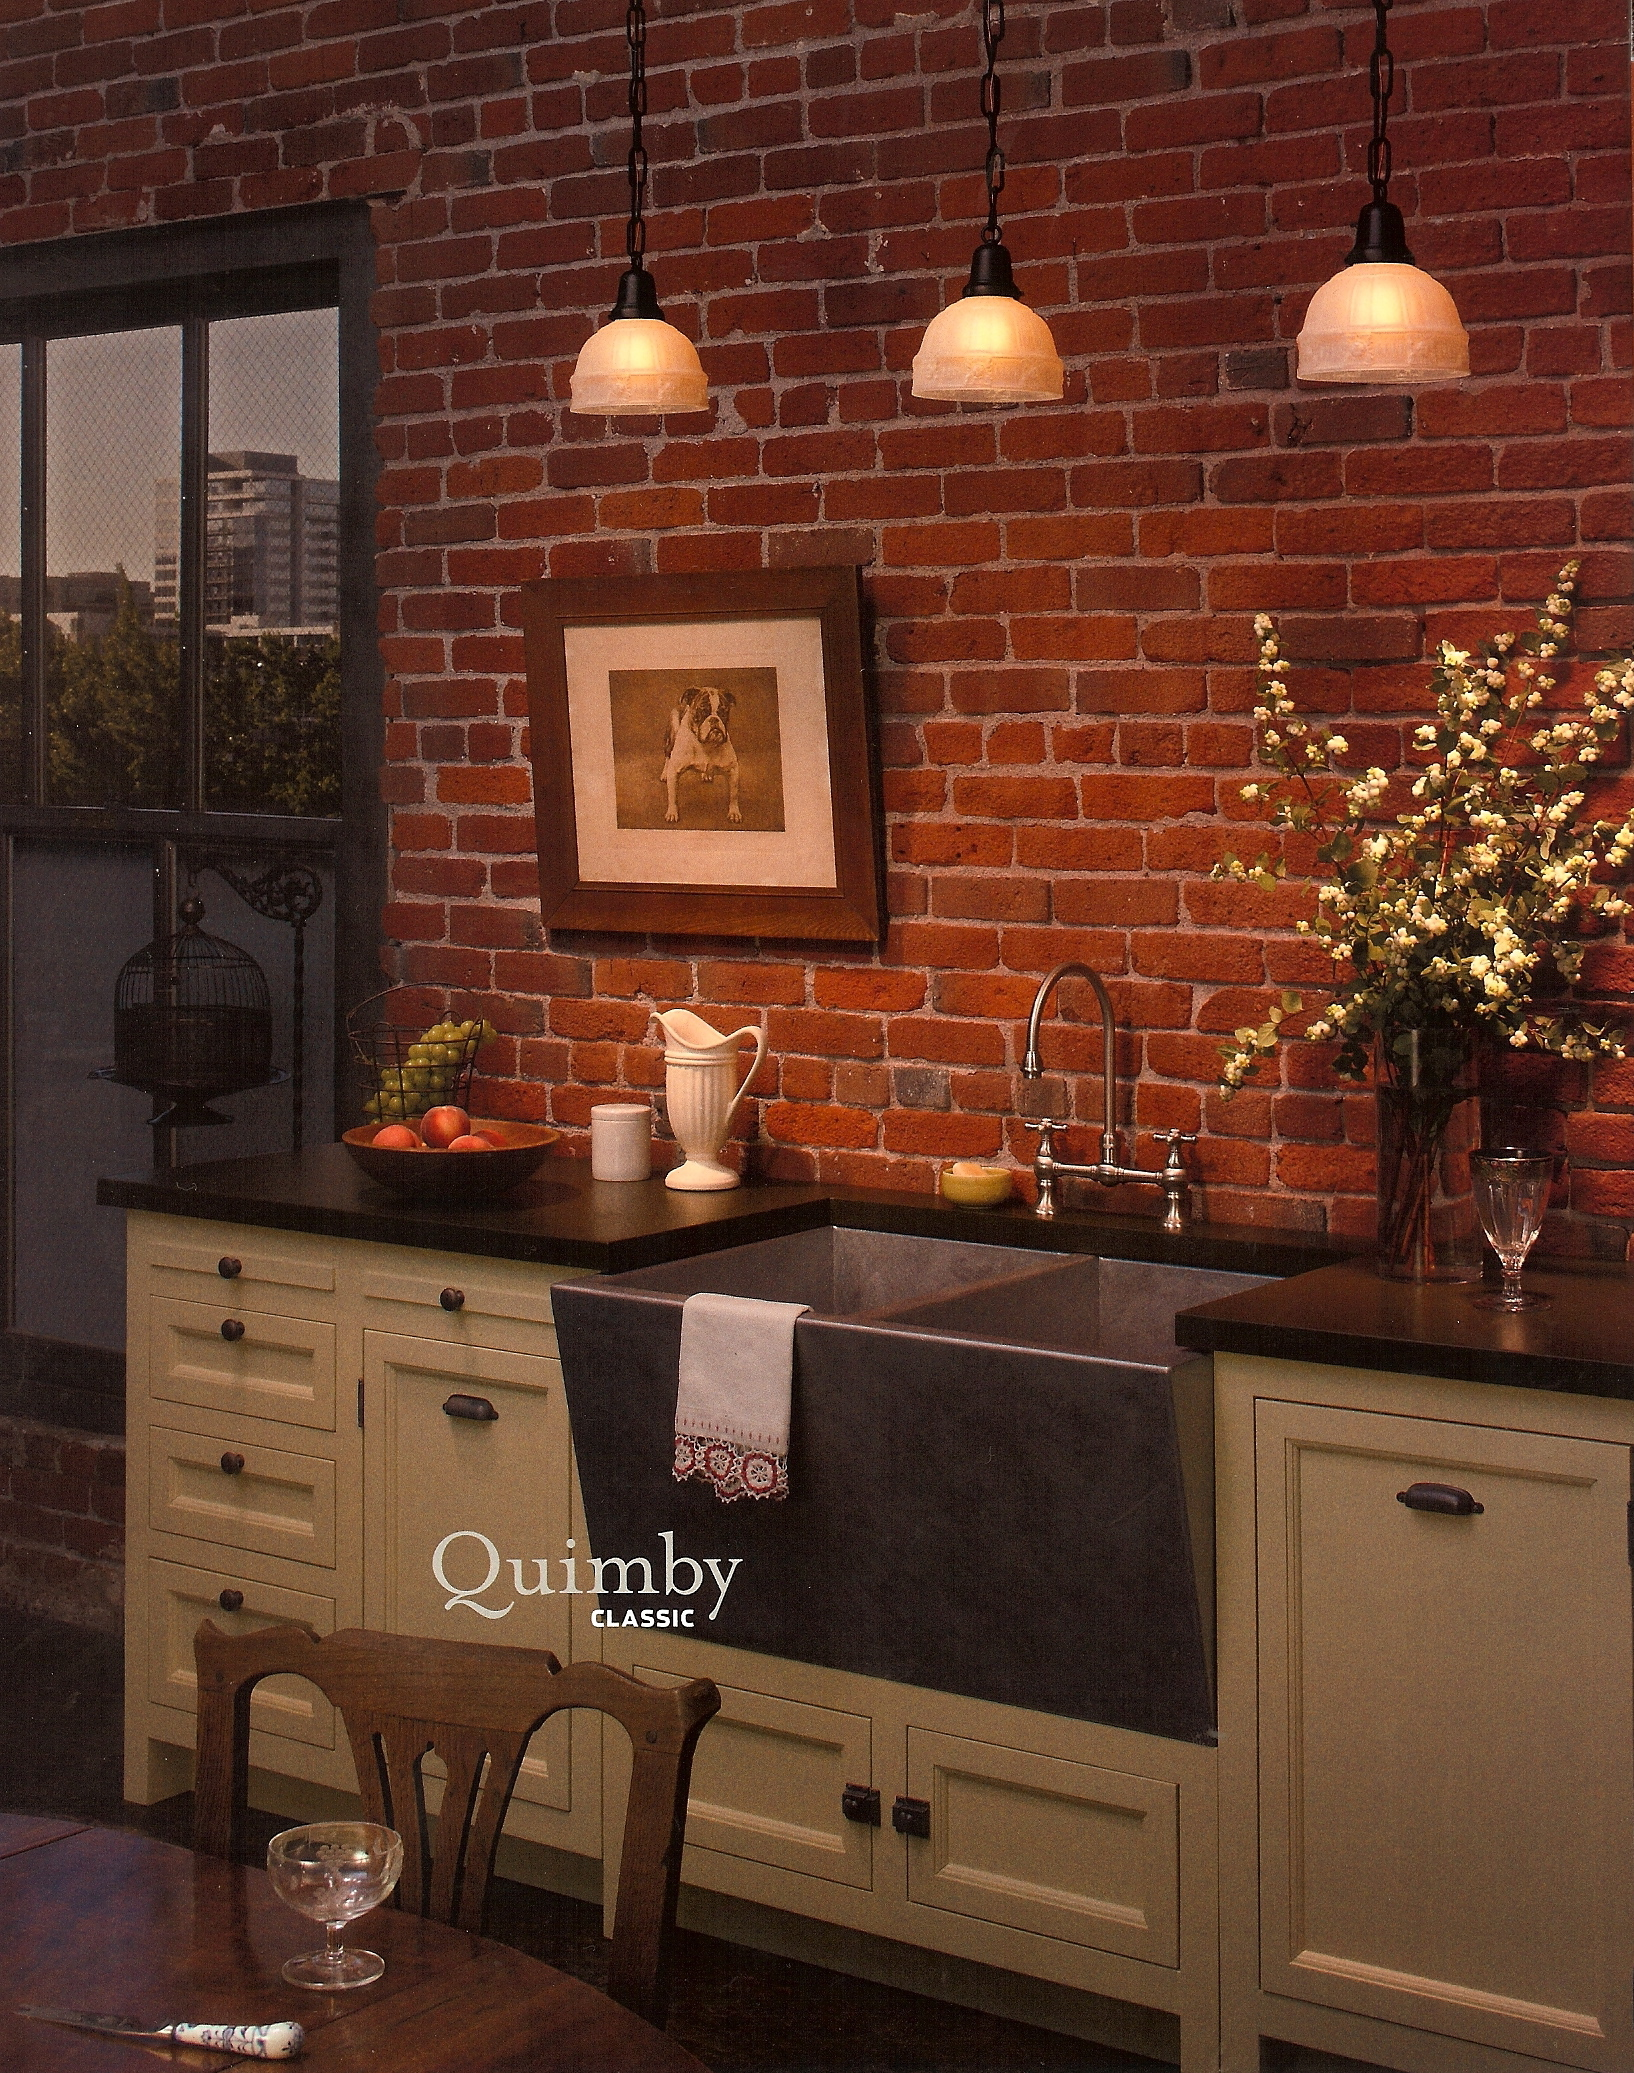 Pleasing Brick Wall And Kitchen Home Design And Decor Reviews Home Remodeling Inspirations Genioncuboardxyz